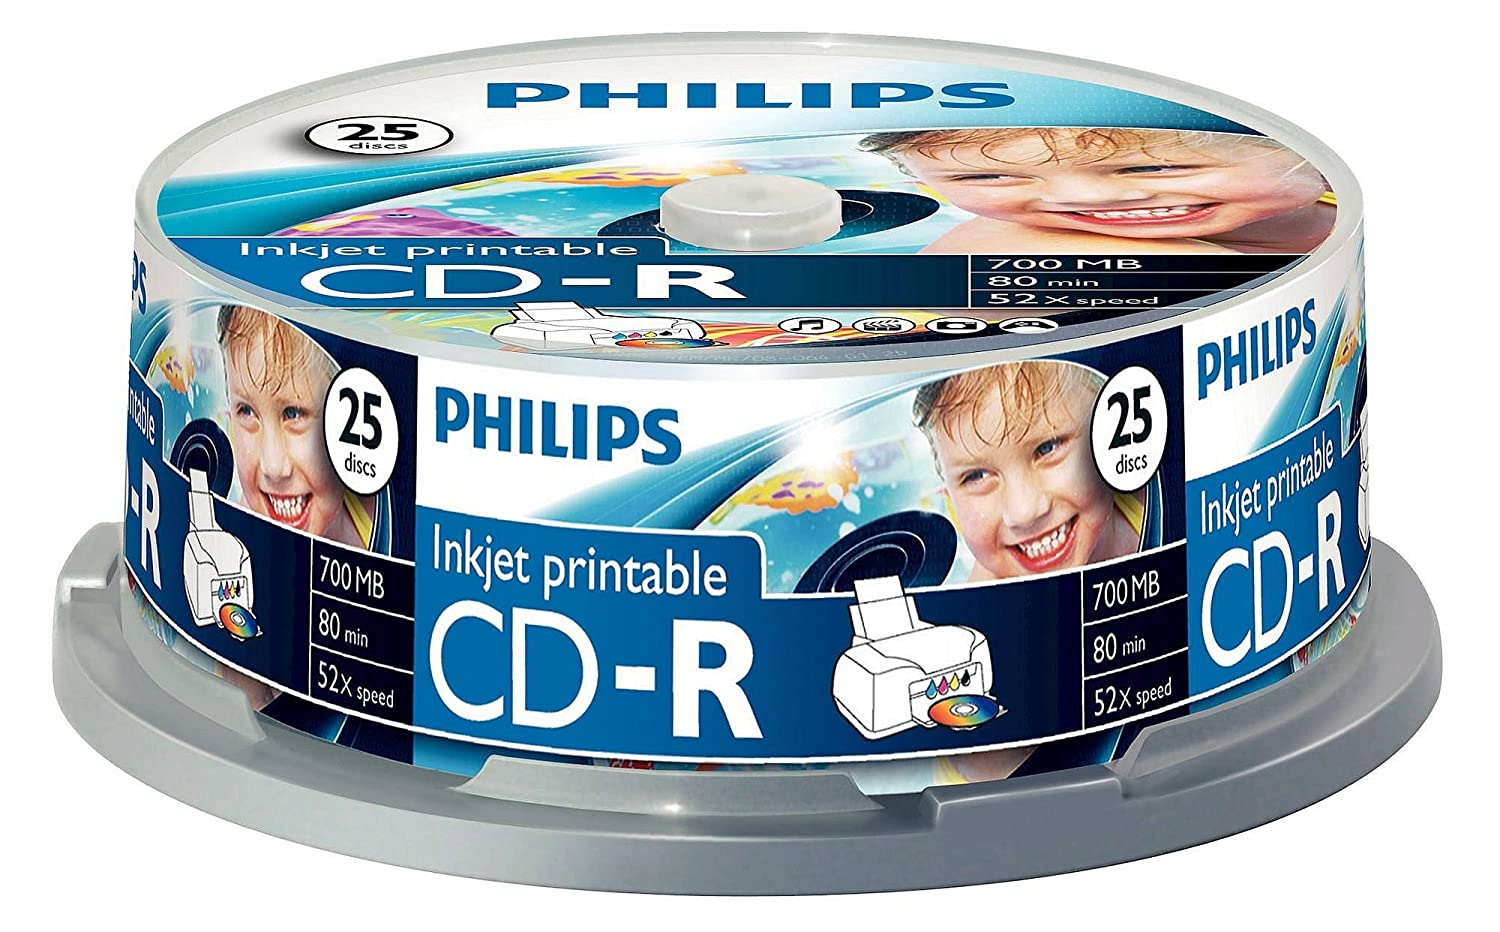 Philips 25 x CD-R - 700MB / 80min 908210004757 B009H05FP4